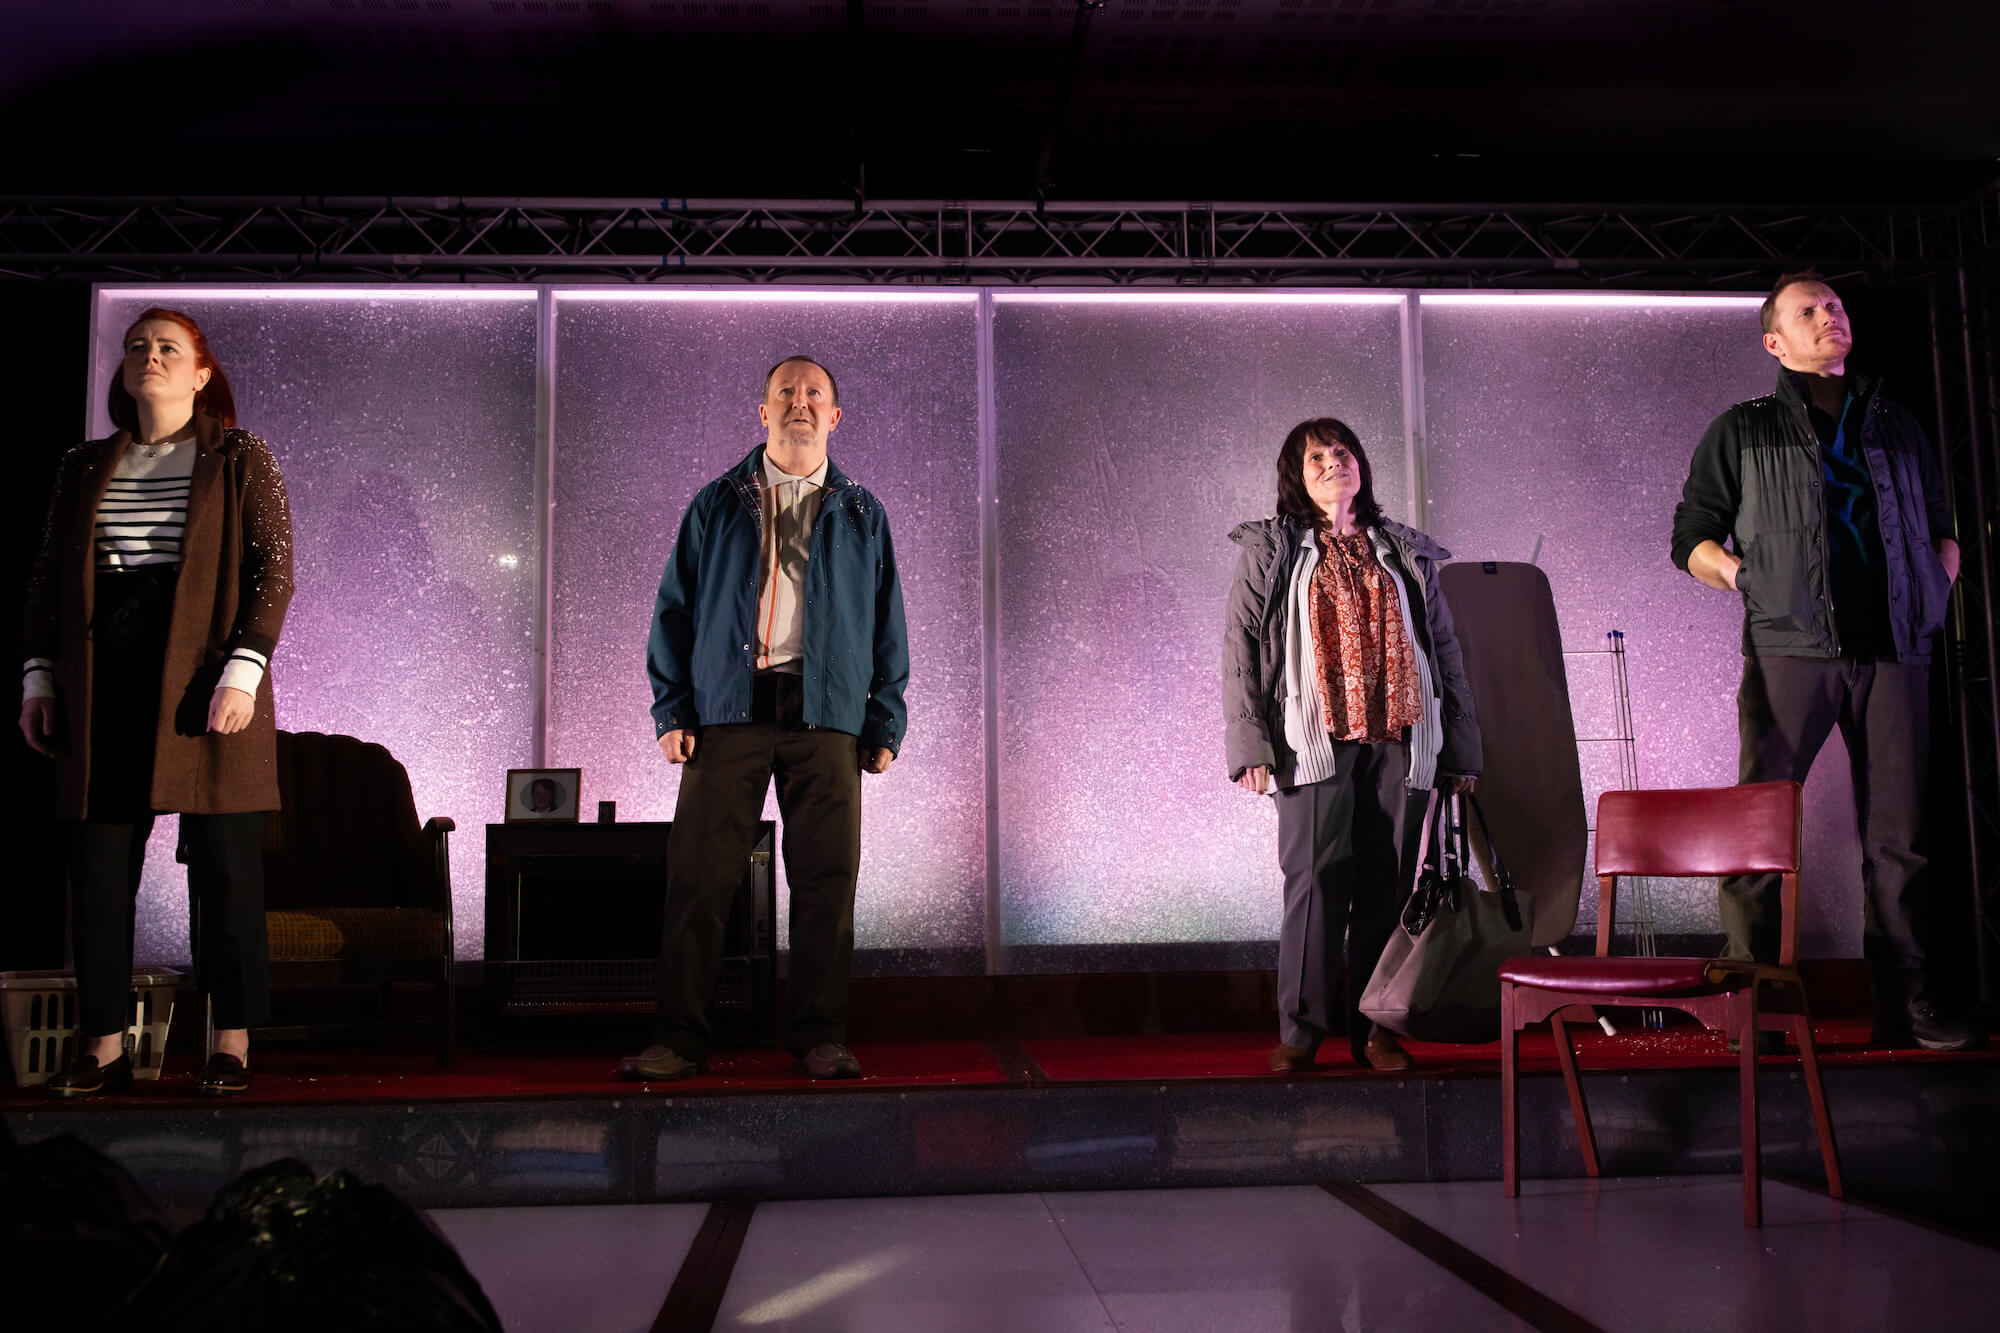 Fibres Film production image of Suzanne Magowan, Jonathan Watson, Maureen Carr and Ali Craig standing in a line on stage looking serious